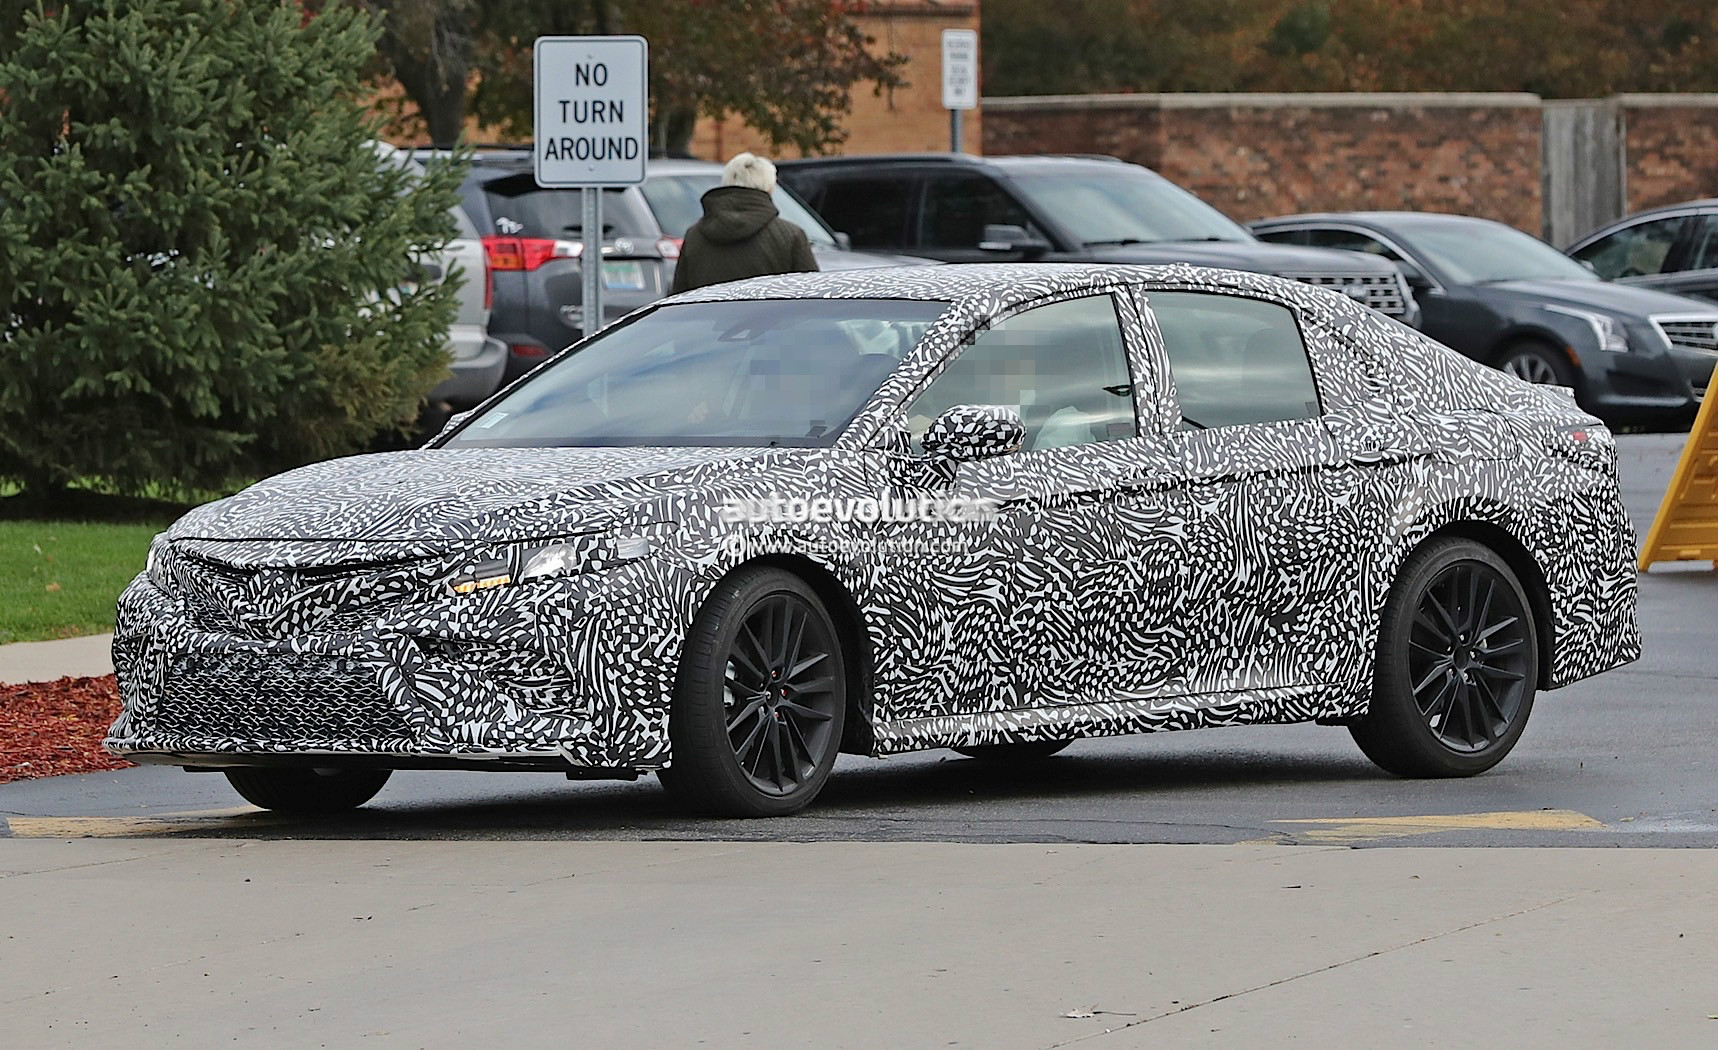 2018 Toyota Camry Spied, Looks Remarkably Similar to 2017 NASCAR ...